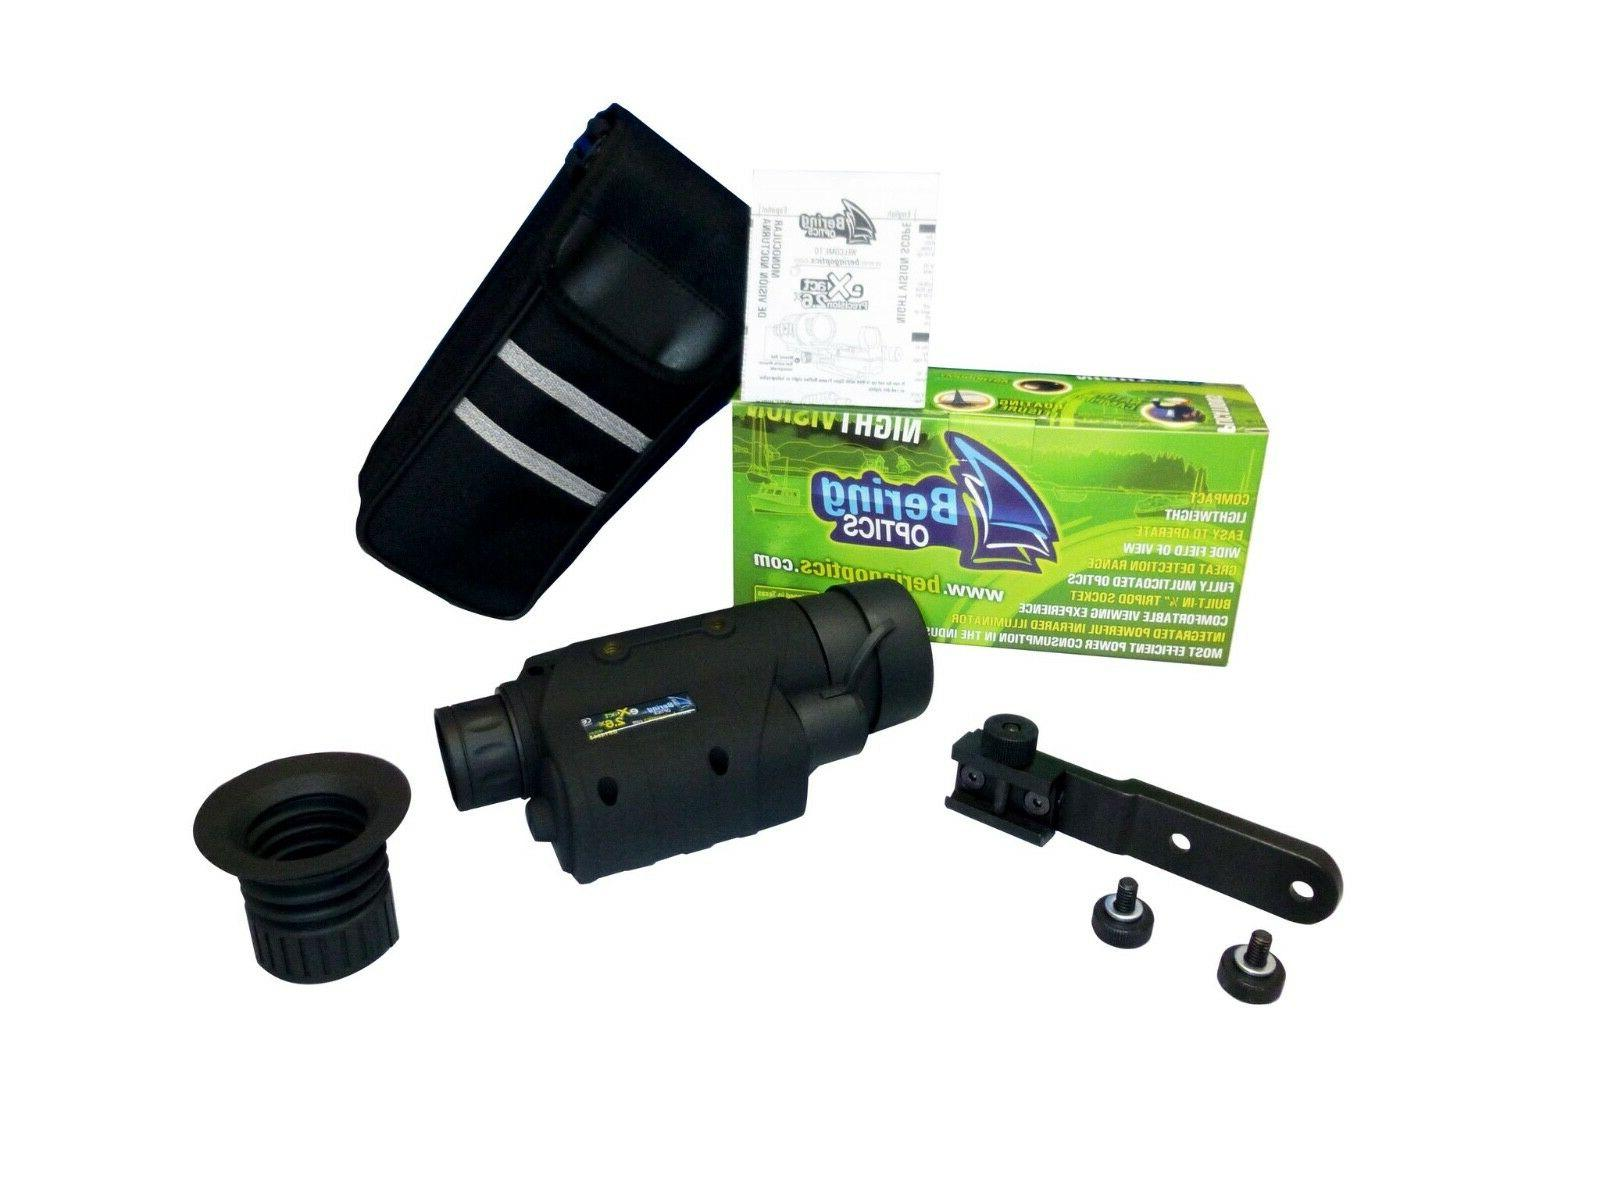 Bering Optics eXact 2.6x44 Gen. I Night Vision Monocular Kit